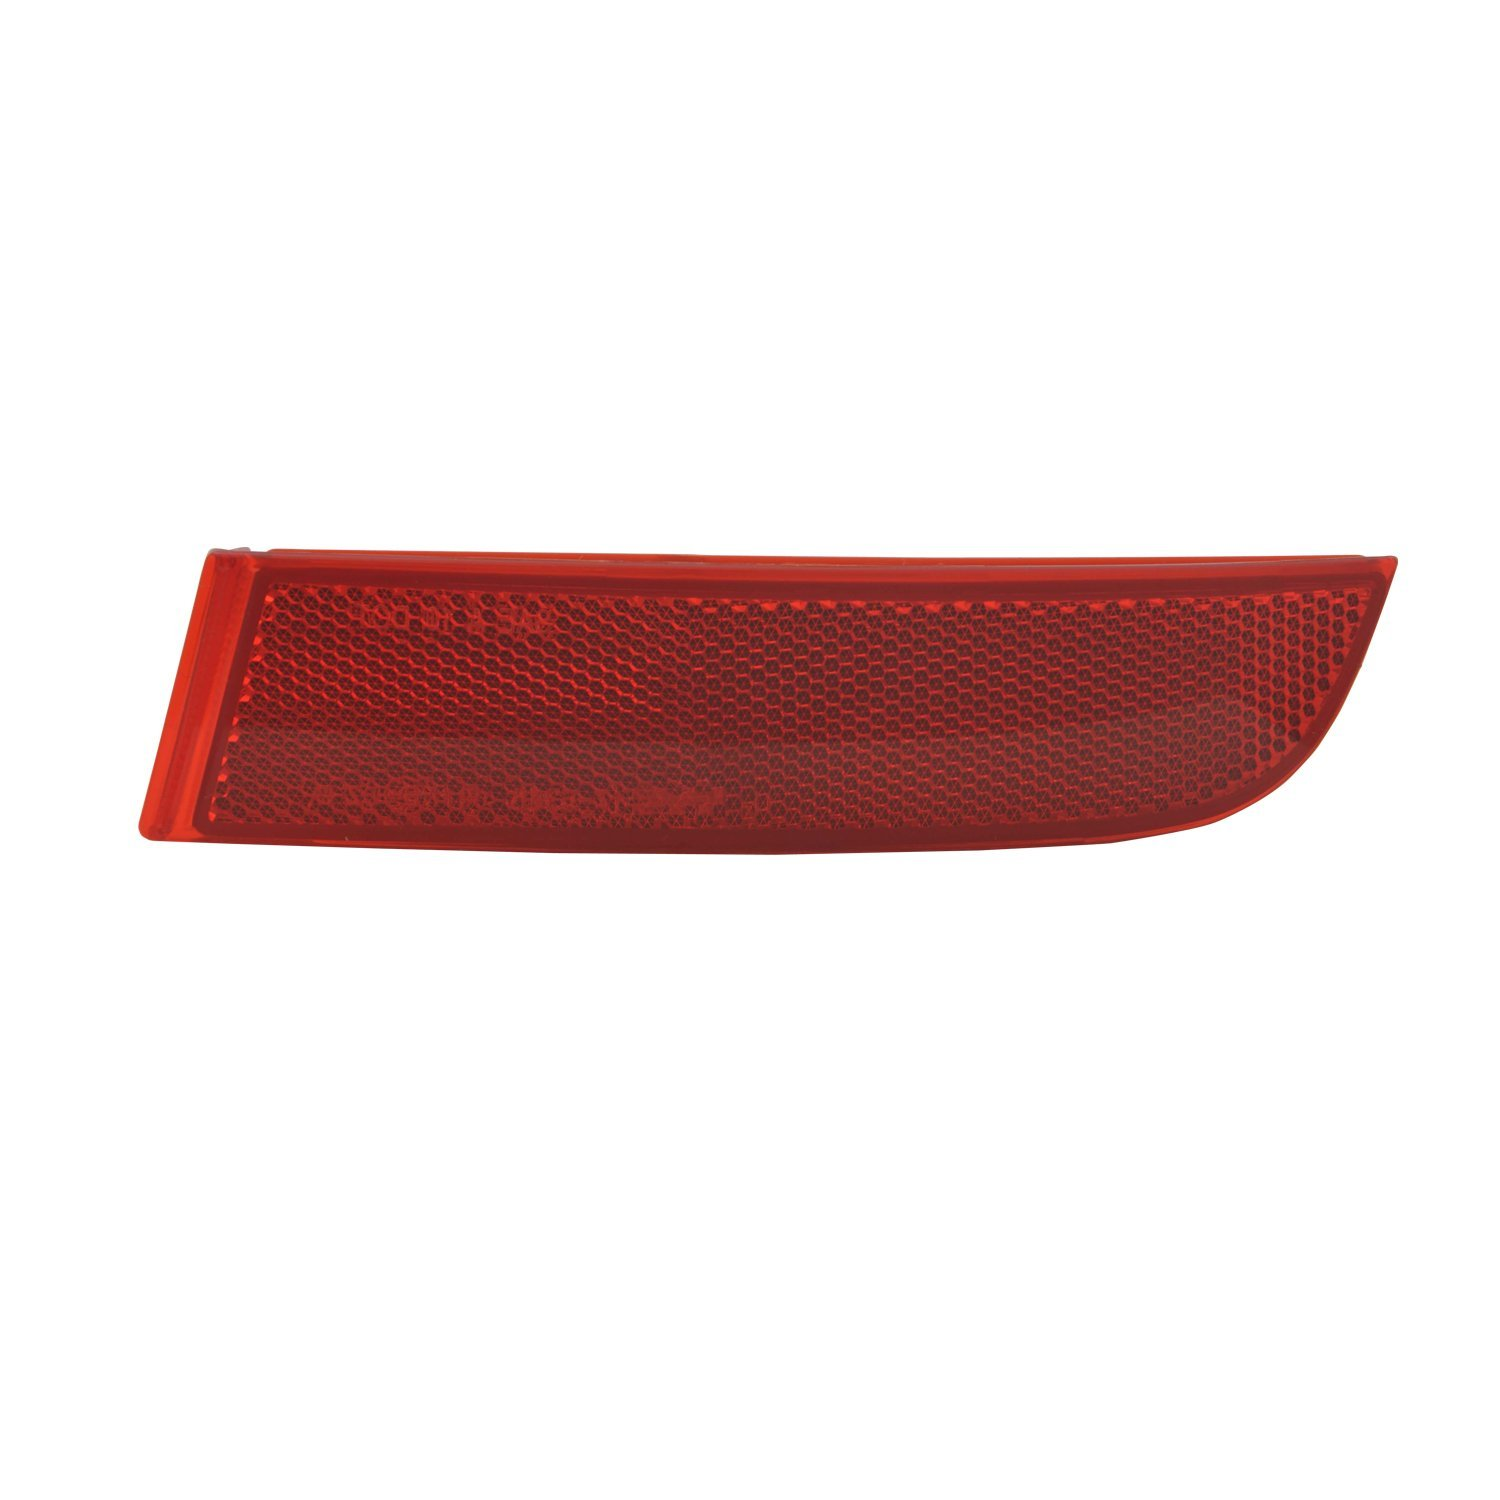 Crash Parts Plus Crash Parts Plus NSF AC1185101 Right Bumper Reflector for 13-15 Acura ILX